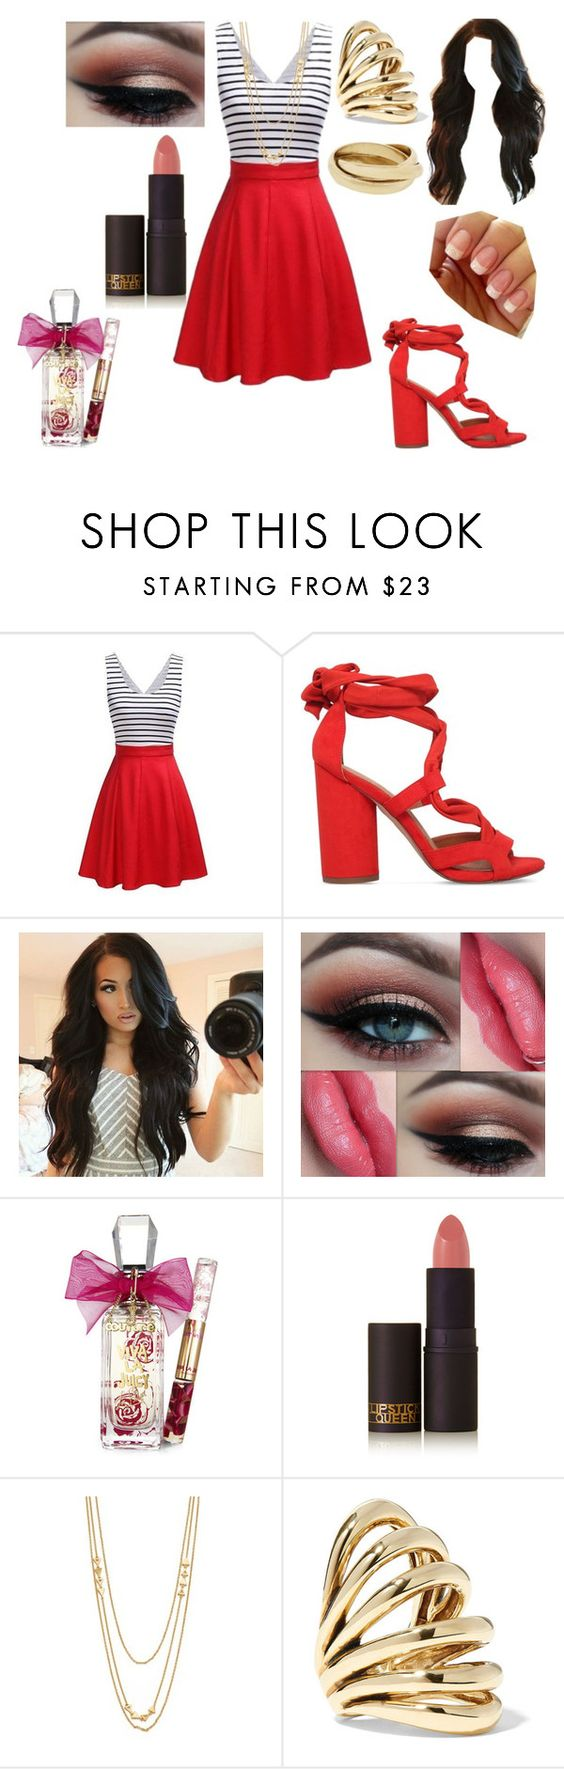 """""""Untitled #485"""" by nerdynerdy ❤ liked on Polyvore featuring KG Kurt Geiger, Juicy Couture, Lipstick Queen, Gorjana and Lisa Eisner"""